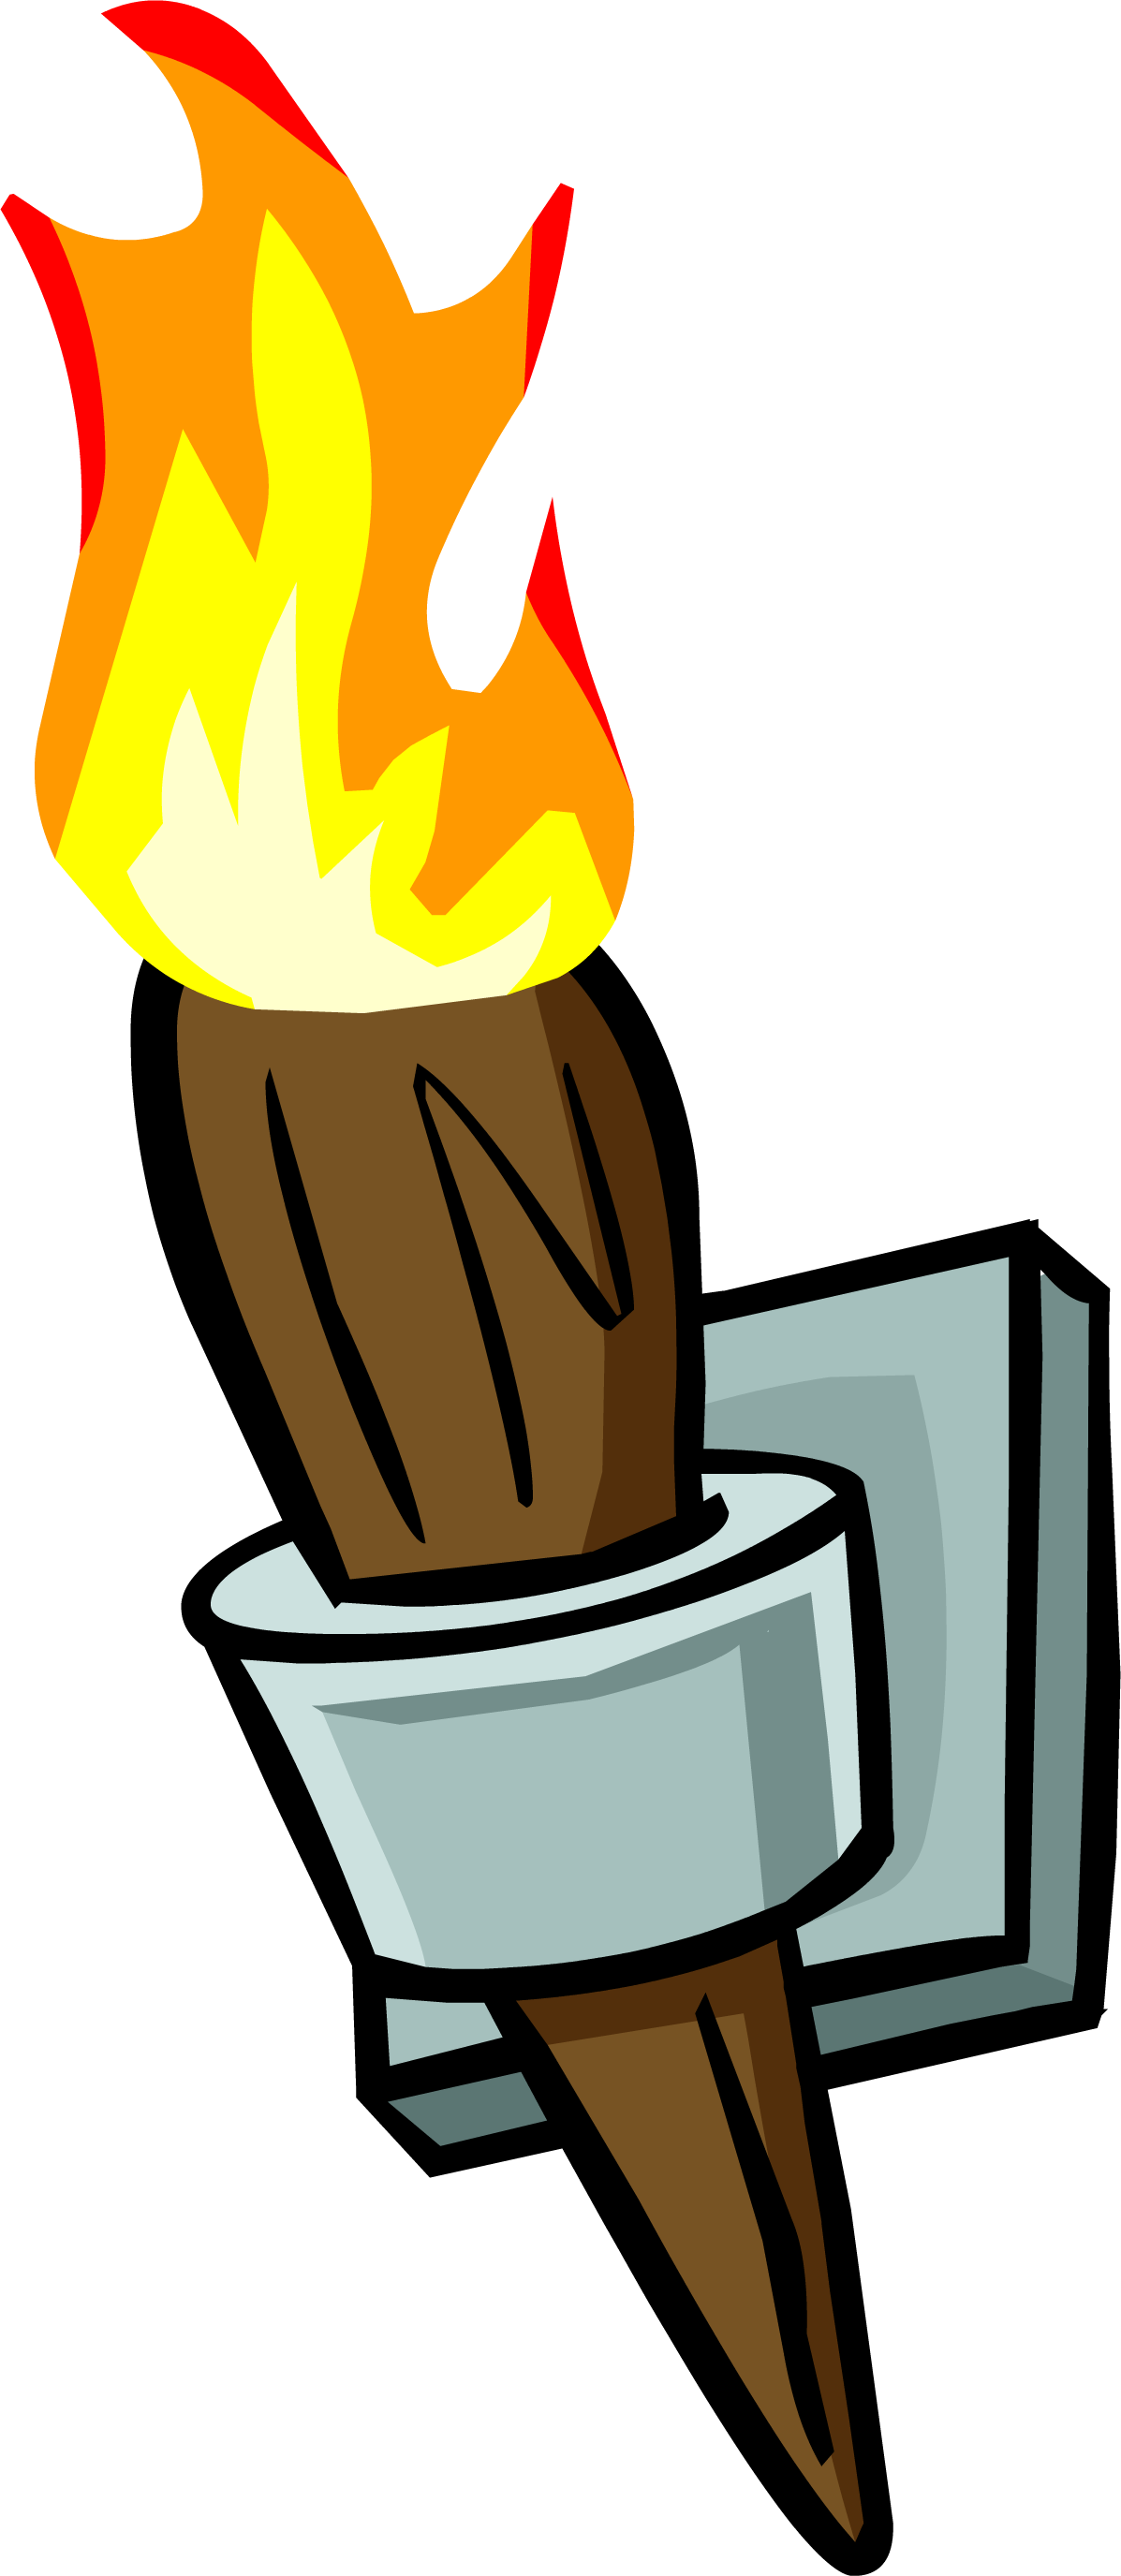 Image wall torch sprite. Flashlight clipart cute